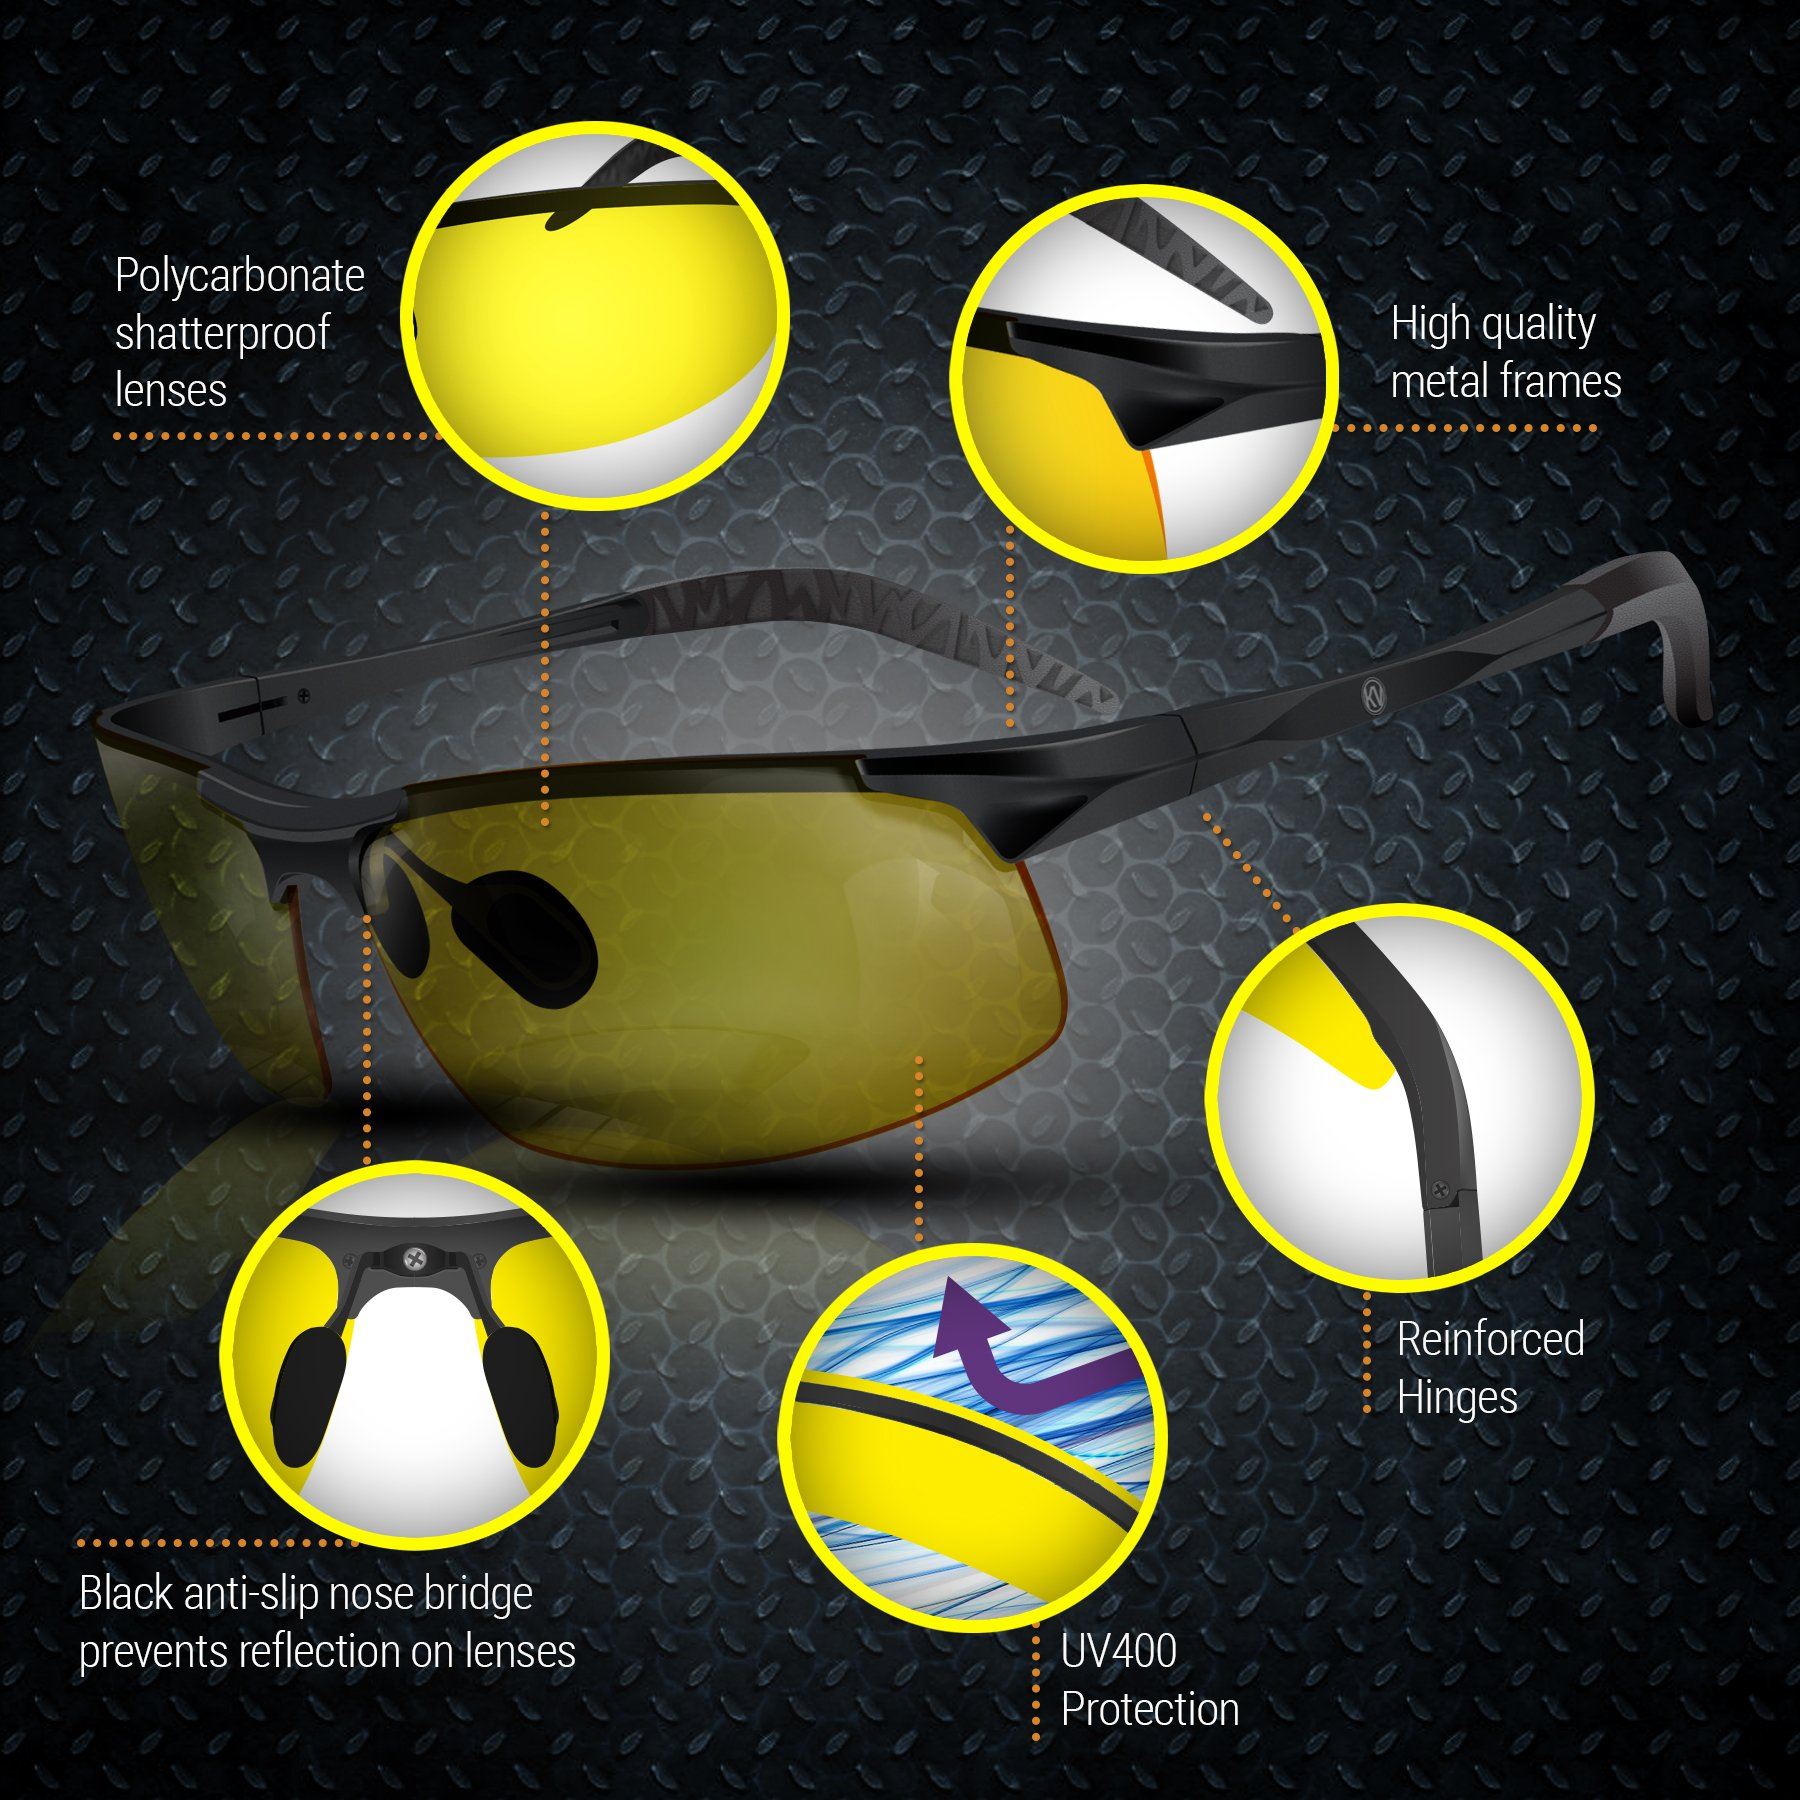 BLUPOND Night Driving Glasses - Semi Polarized Yellow Tint HD Vision Anti Glare Lens - Unbreakable Metal Frame with Car Clip Holder - Knight Visor (BlackCase) by BLUPOND (Image #6)